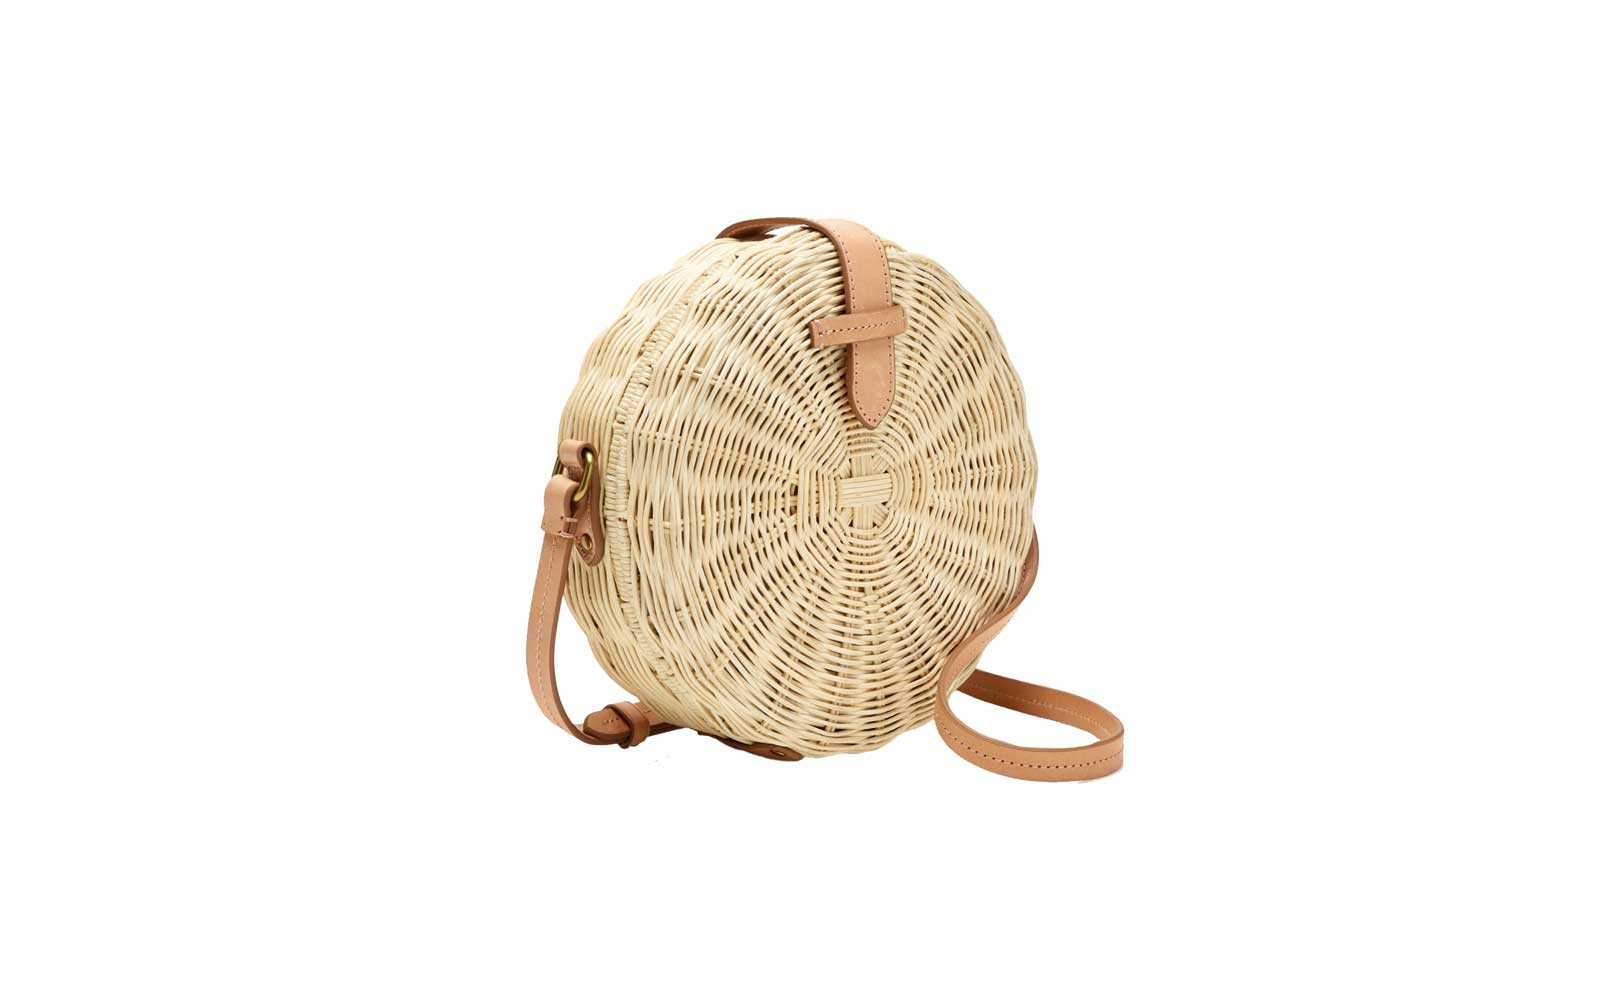 da8db2aa25 17 Cute Straw Bags - Crossbody